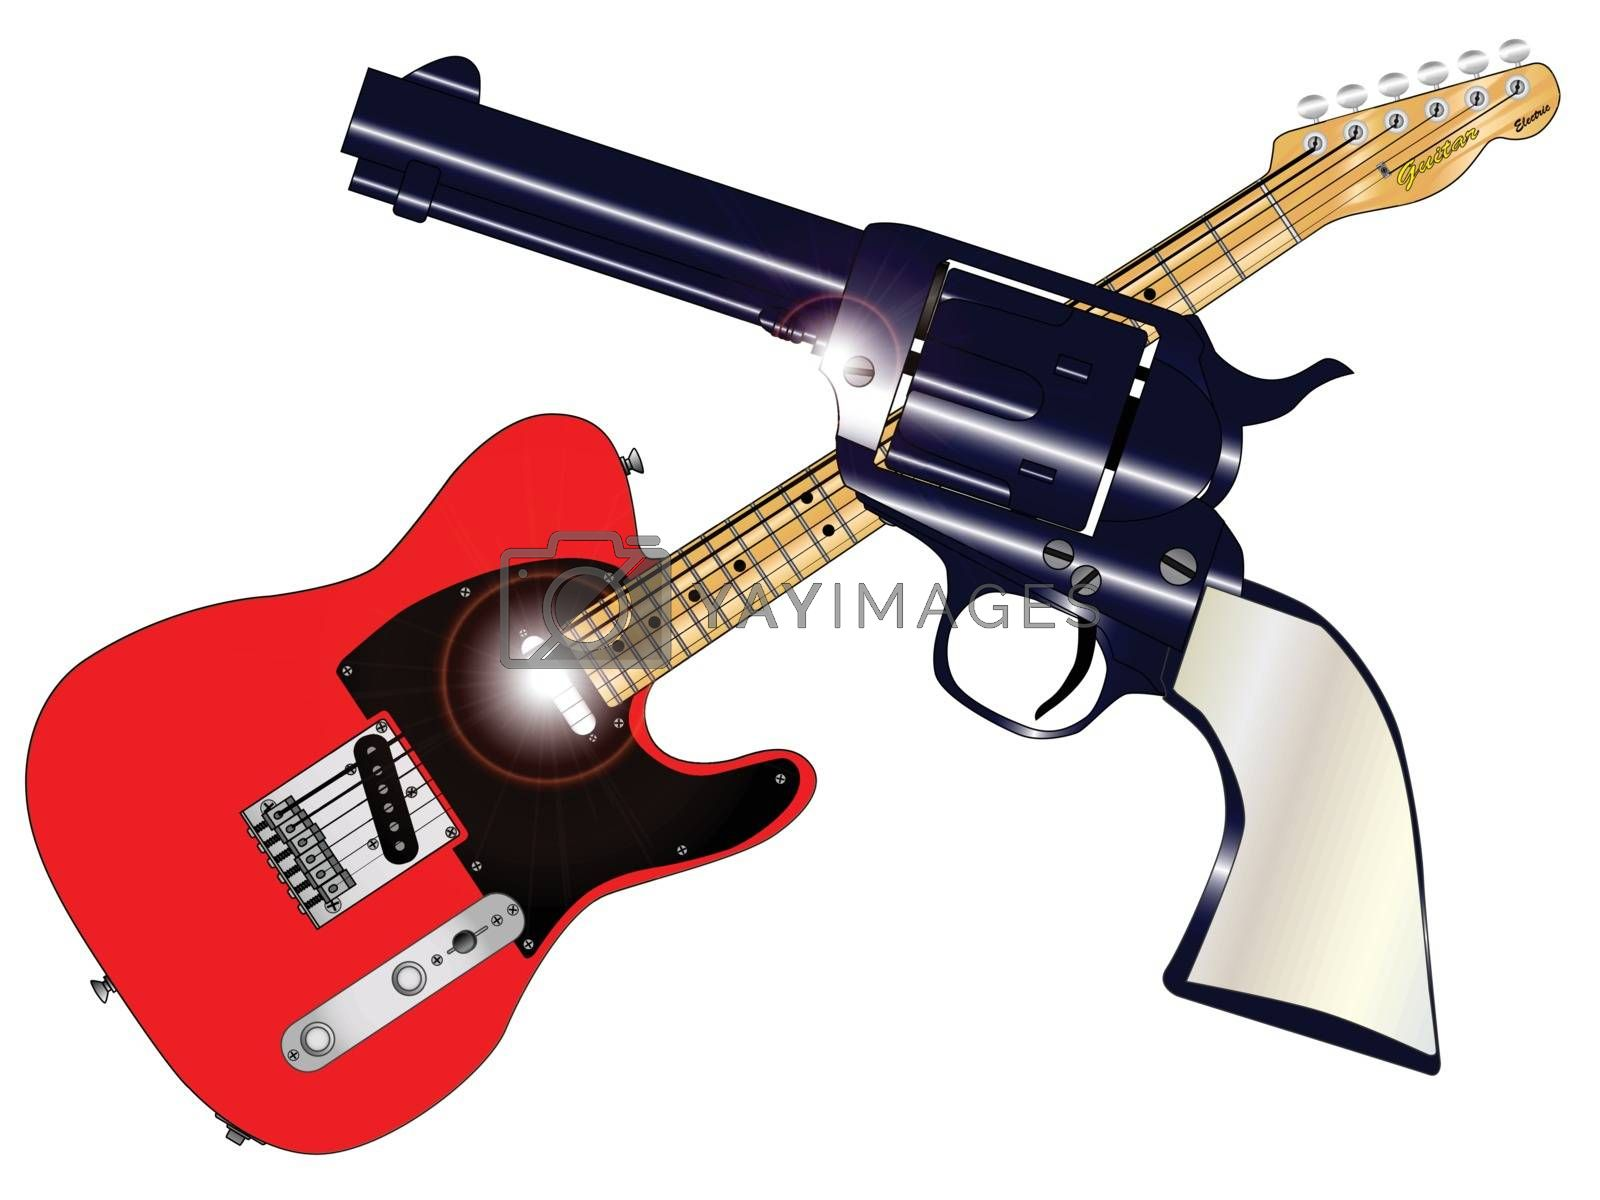 A country guitar and six shooter over a white background